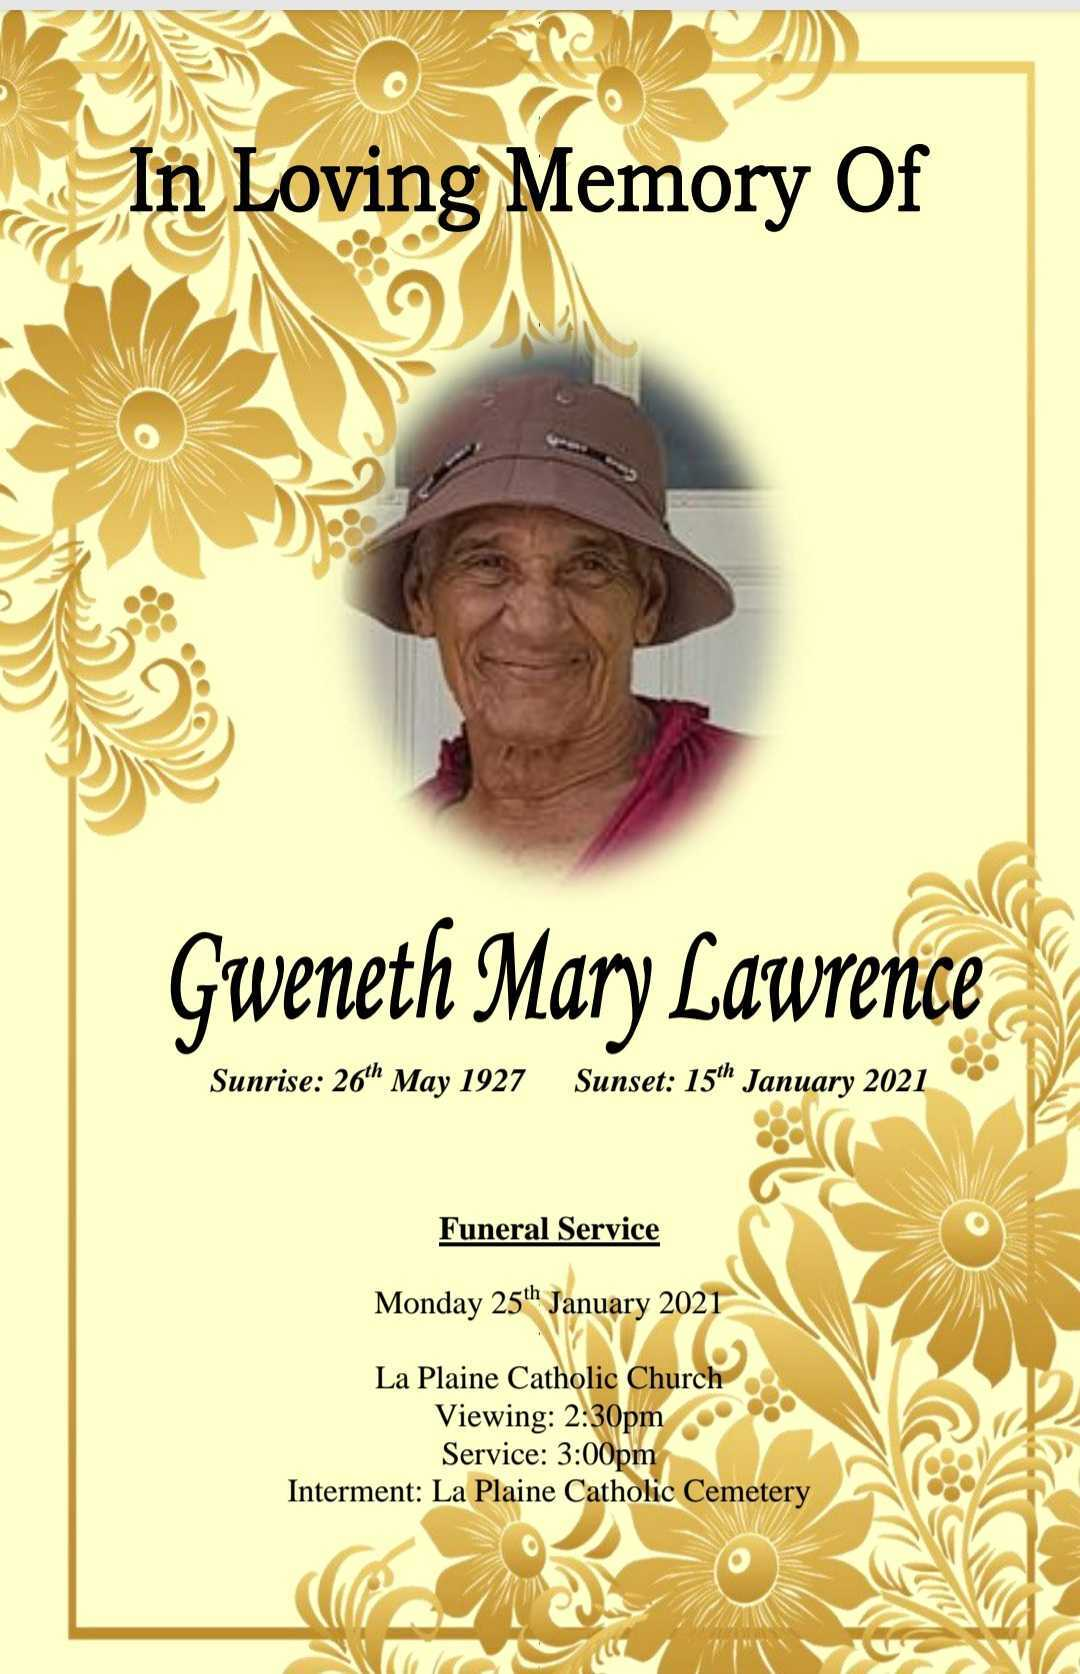 Death Announcement of Gweneth Mary Lawrence nee Bruney of Laplaine